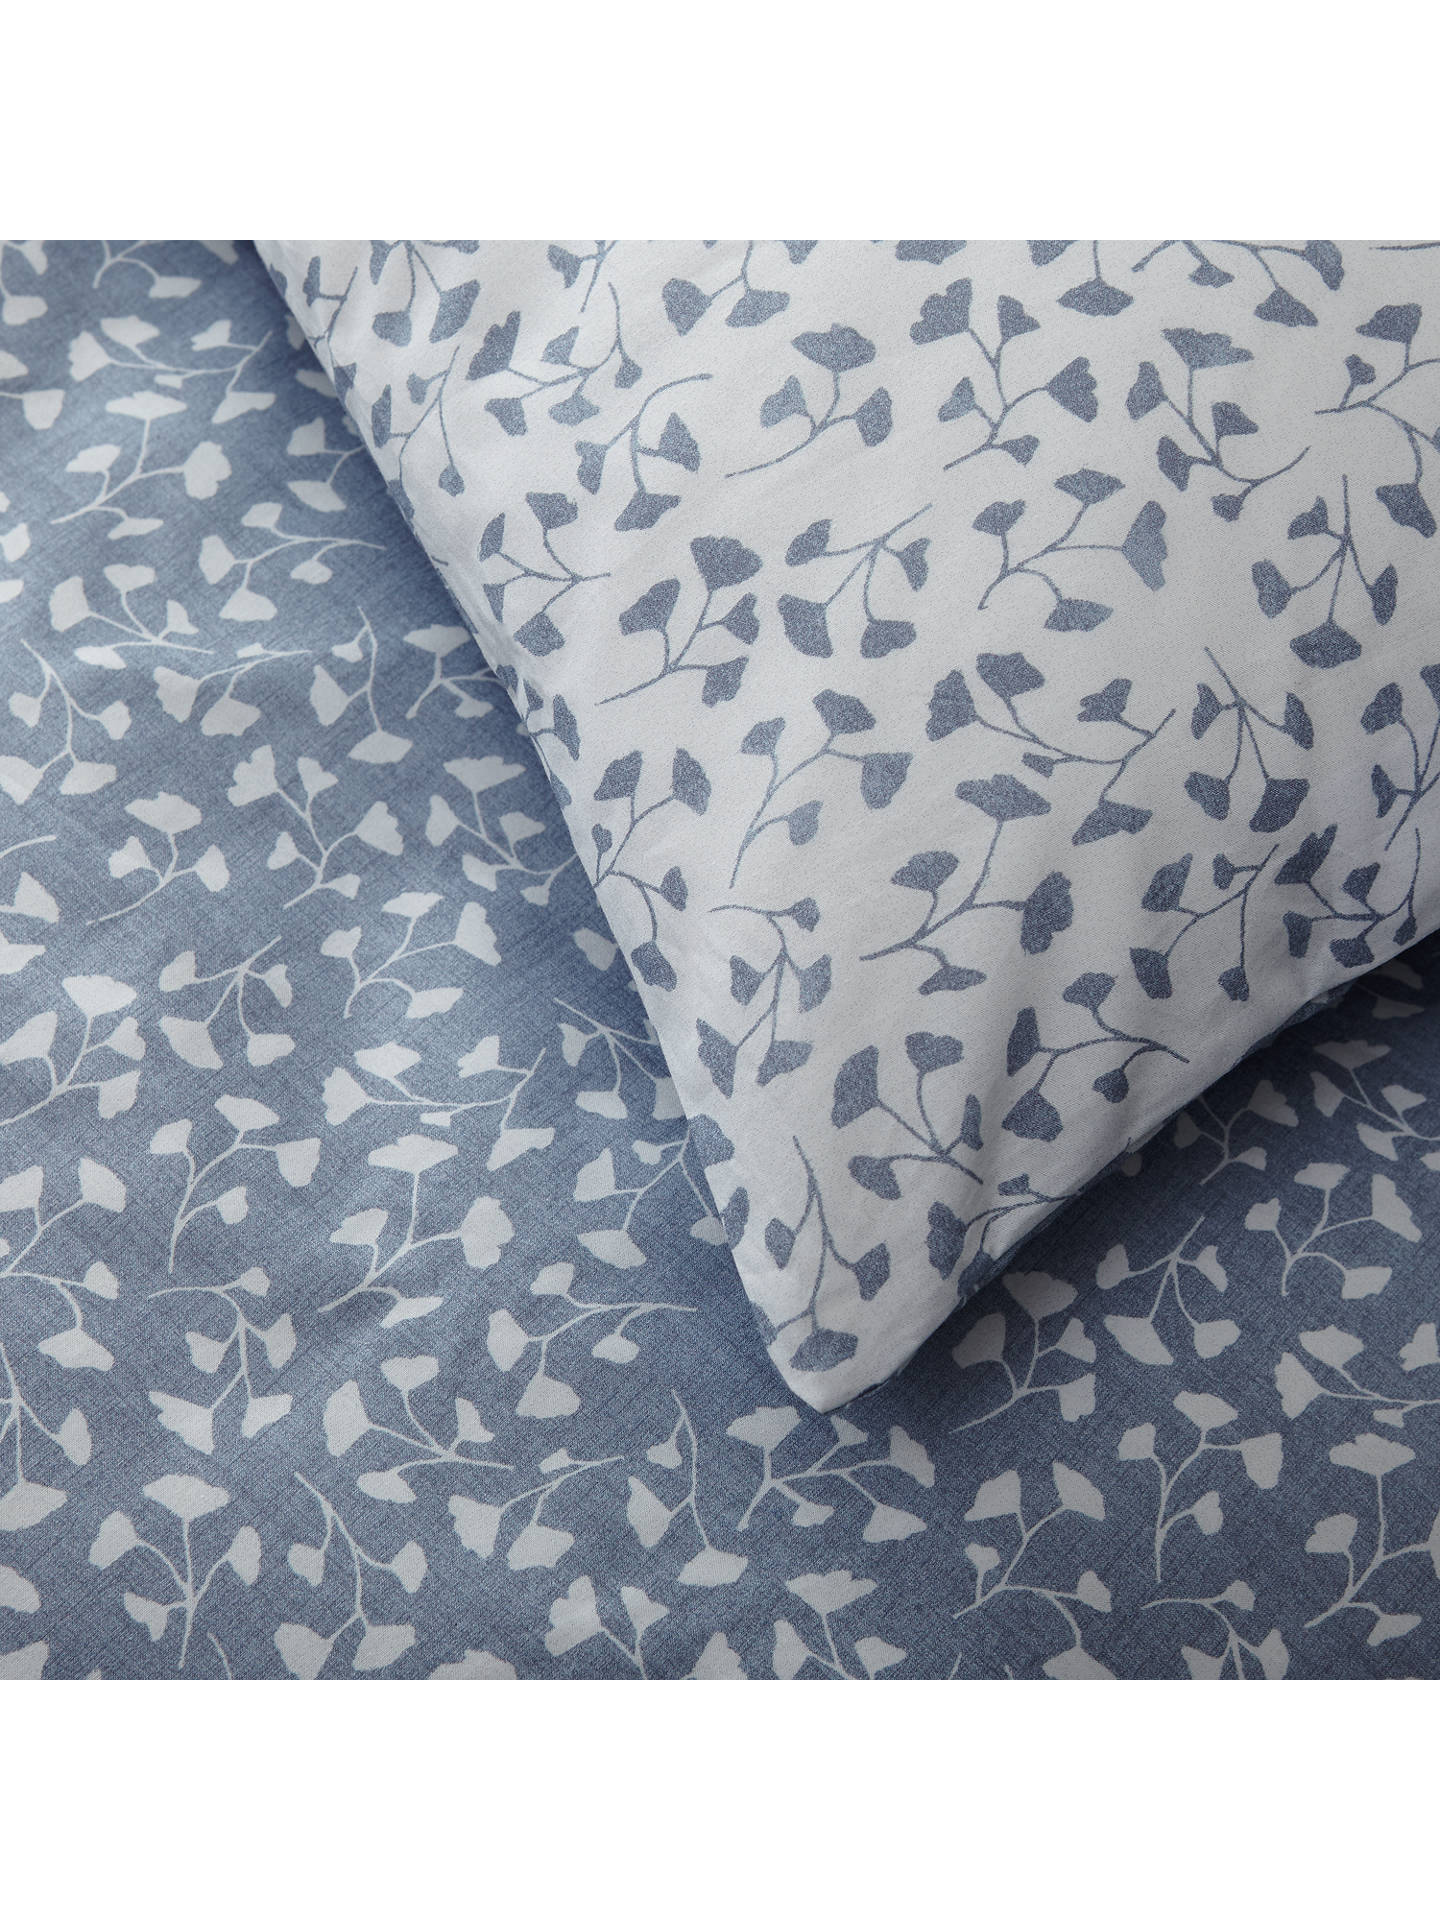 Crisp and Fresh Country Arley Bedding